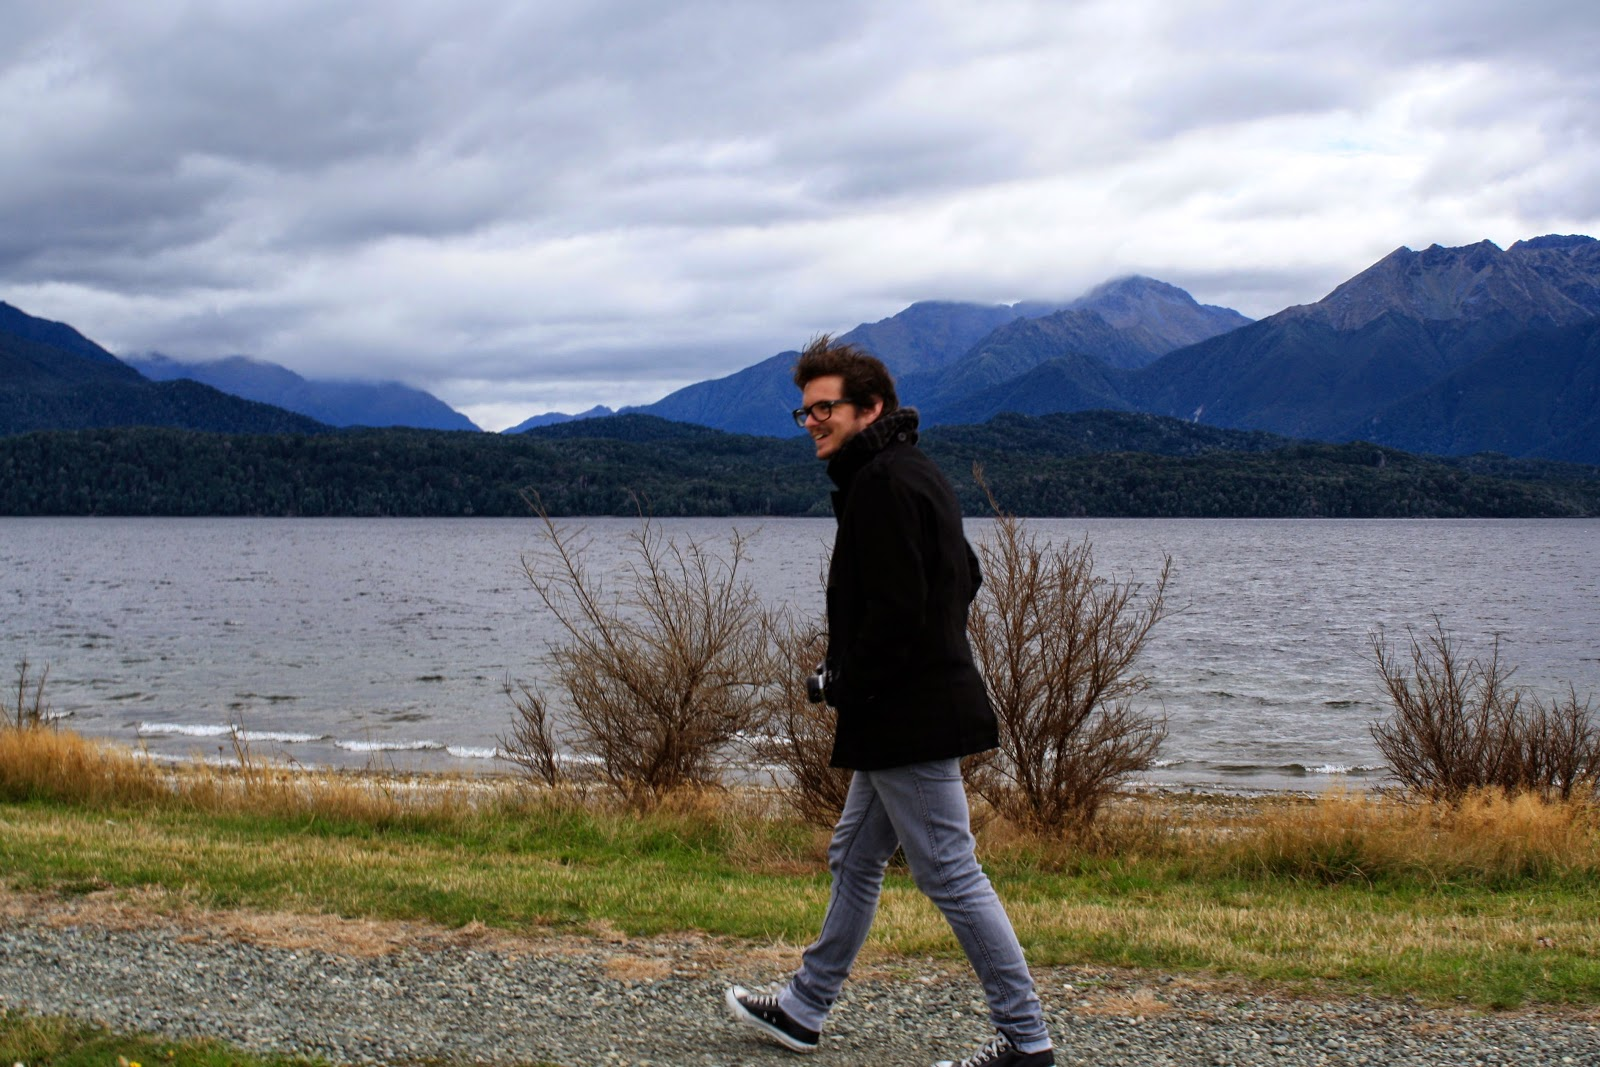 Going for a walk around Lake Te Anau.